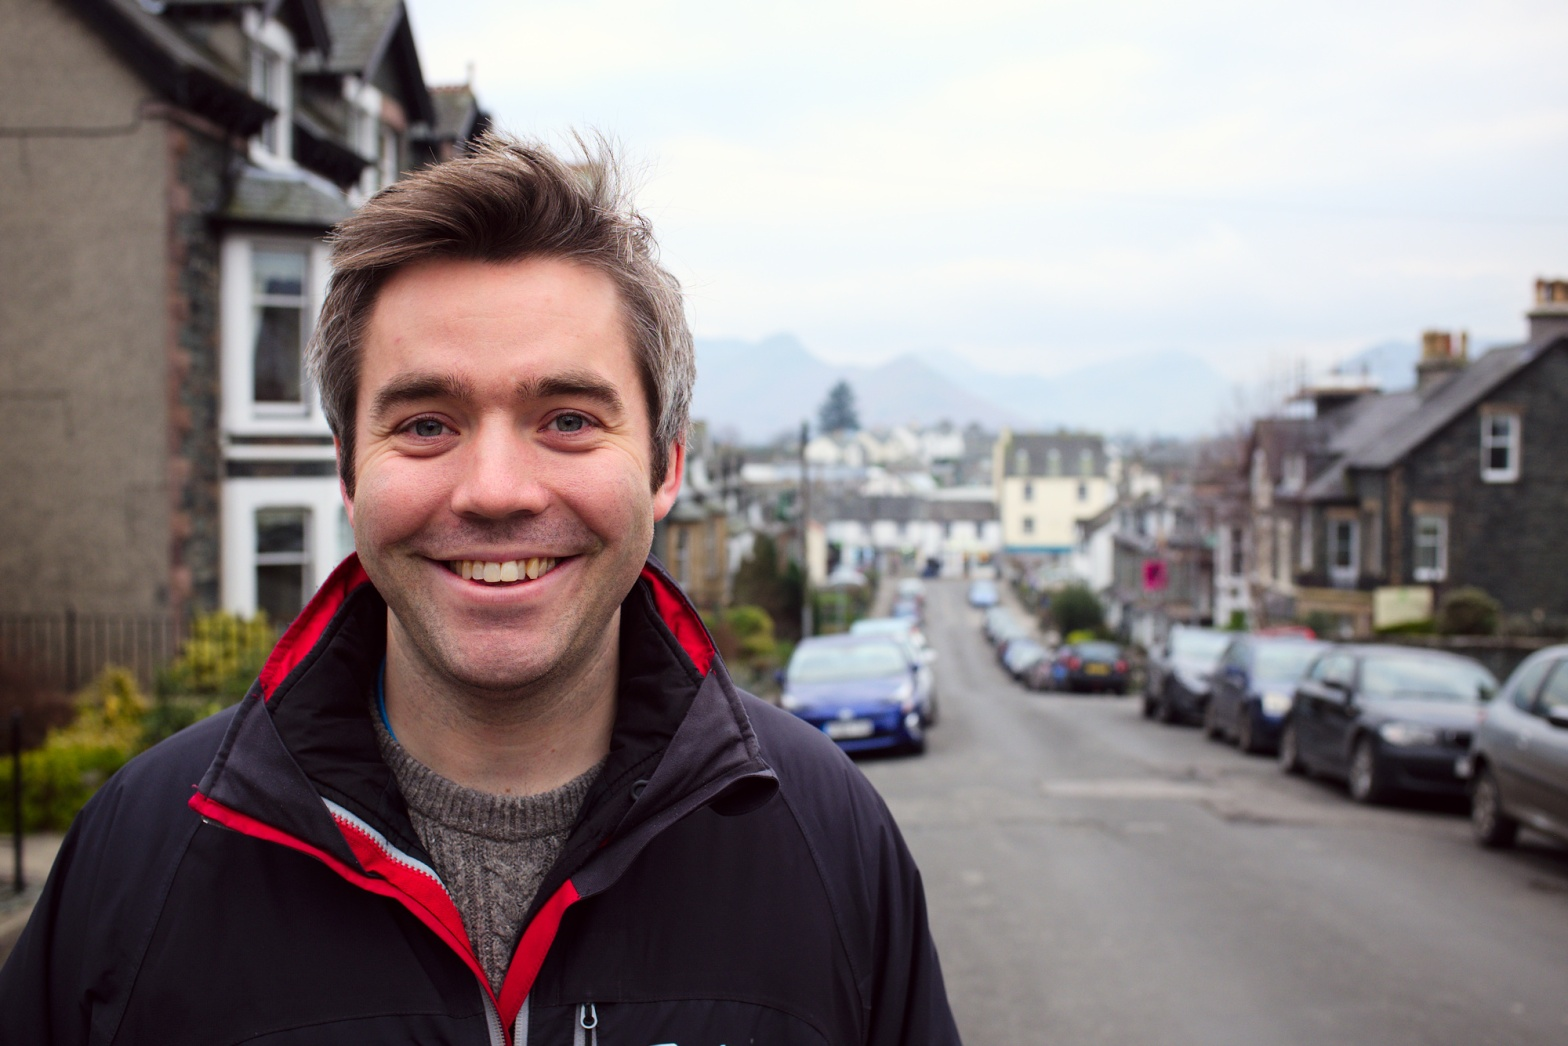 Jack Lenox, standing for the Green Party in the upcoming Copeland By-Election